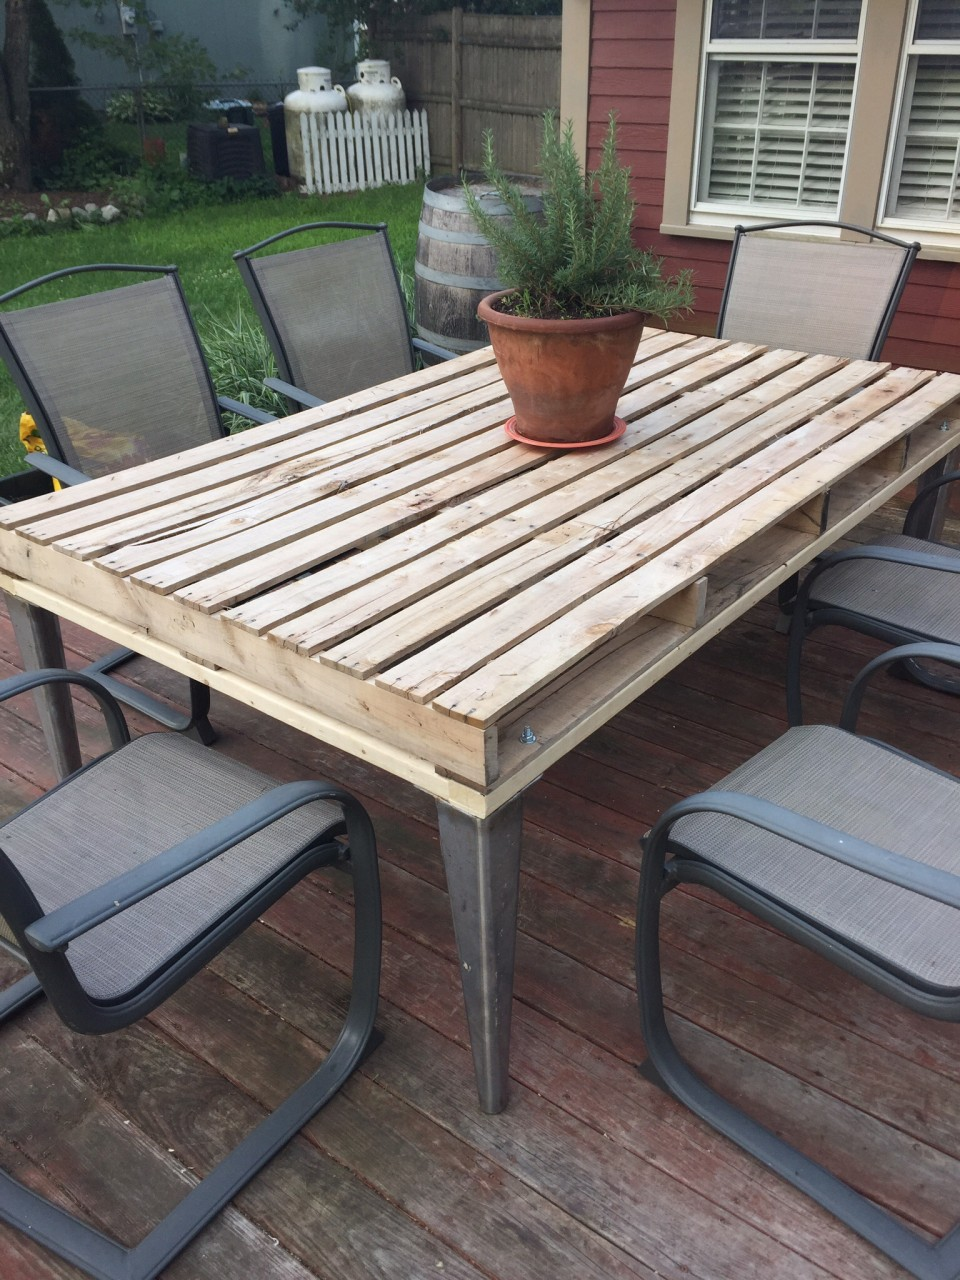 Patio coffee table out of wooden pallets pallet ideas for How to make furniture out of wood pallets